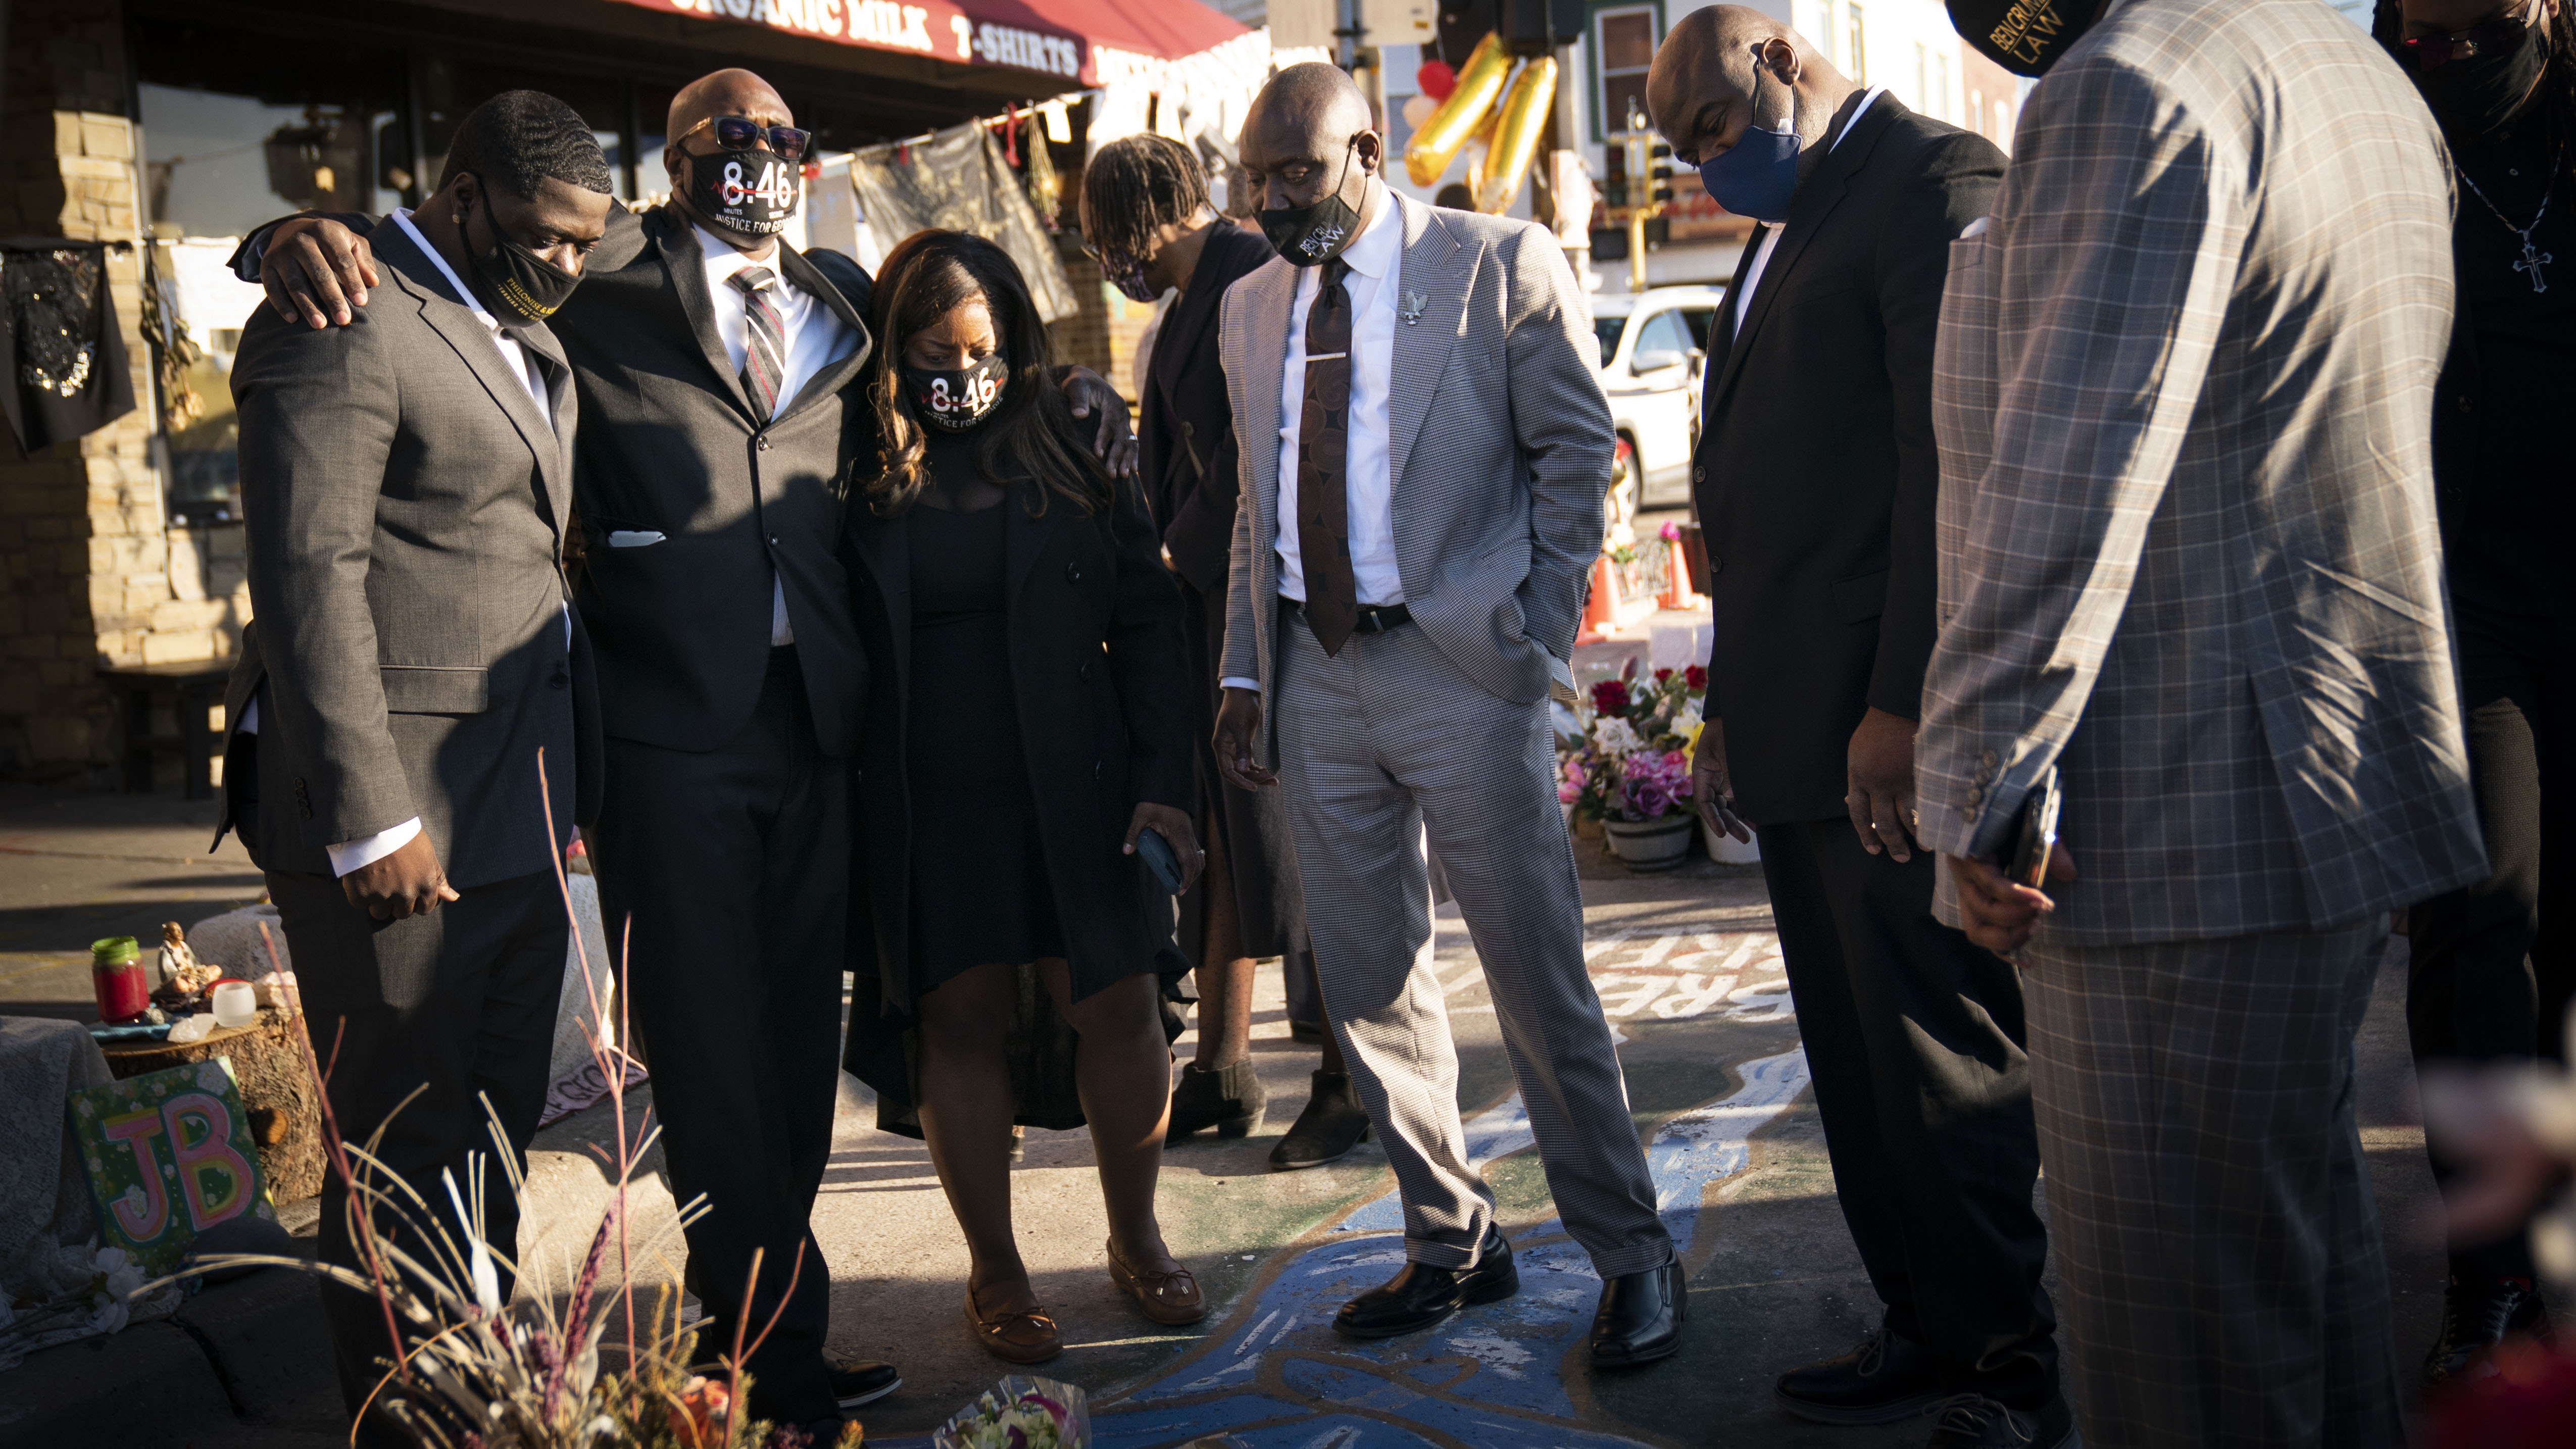 Floyd family pledge $500K to businesses at 38th & Chicago